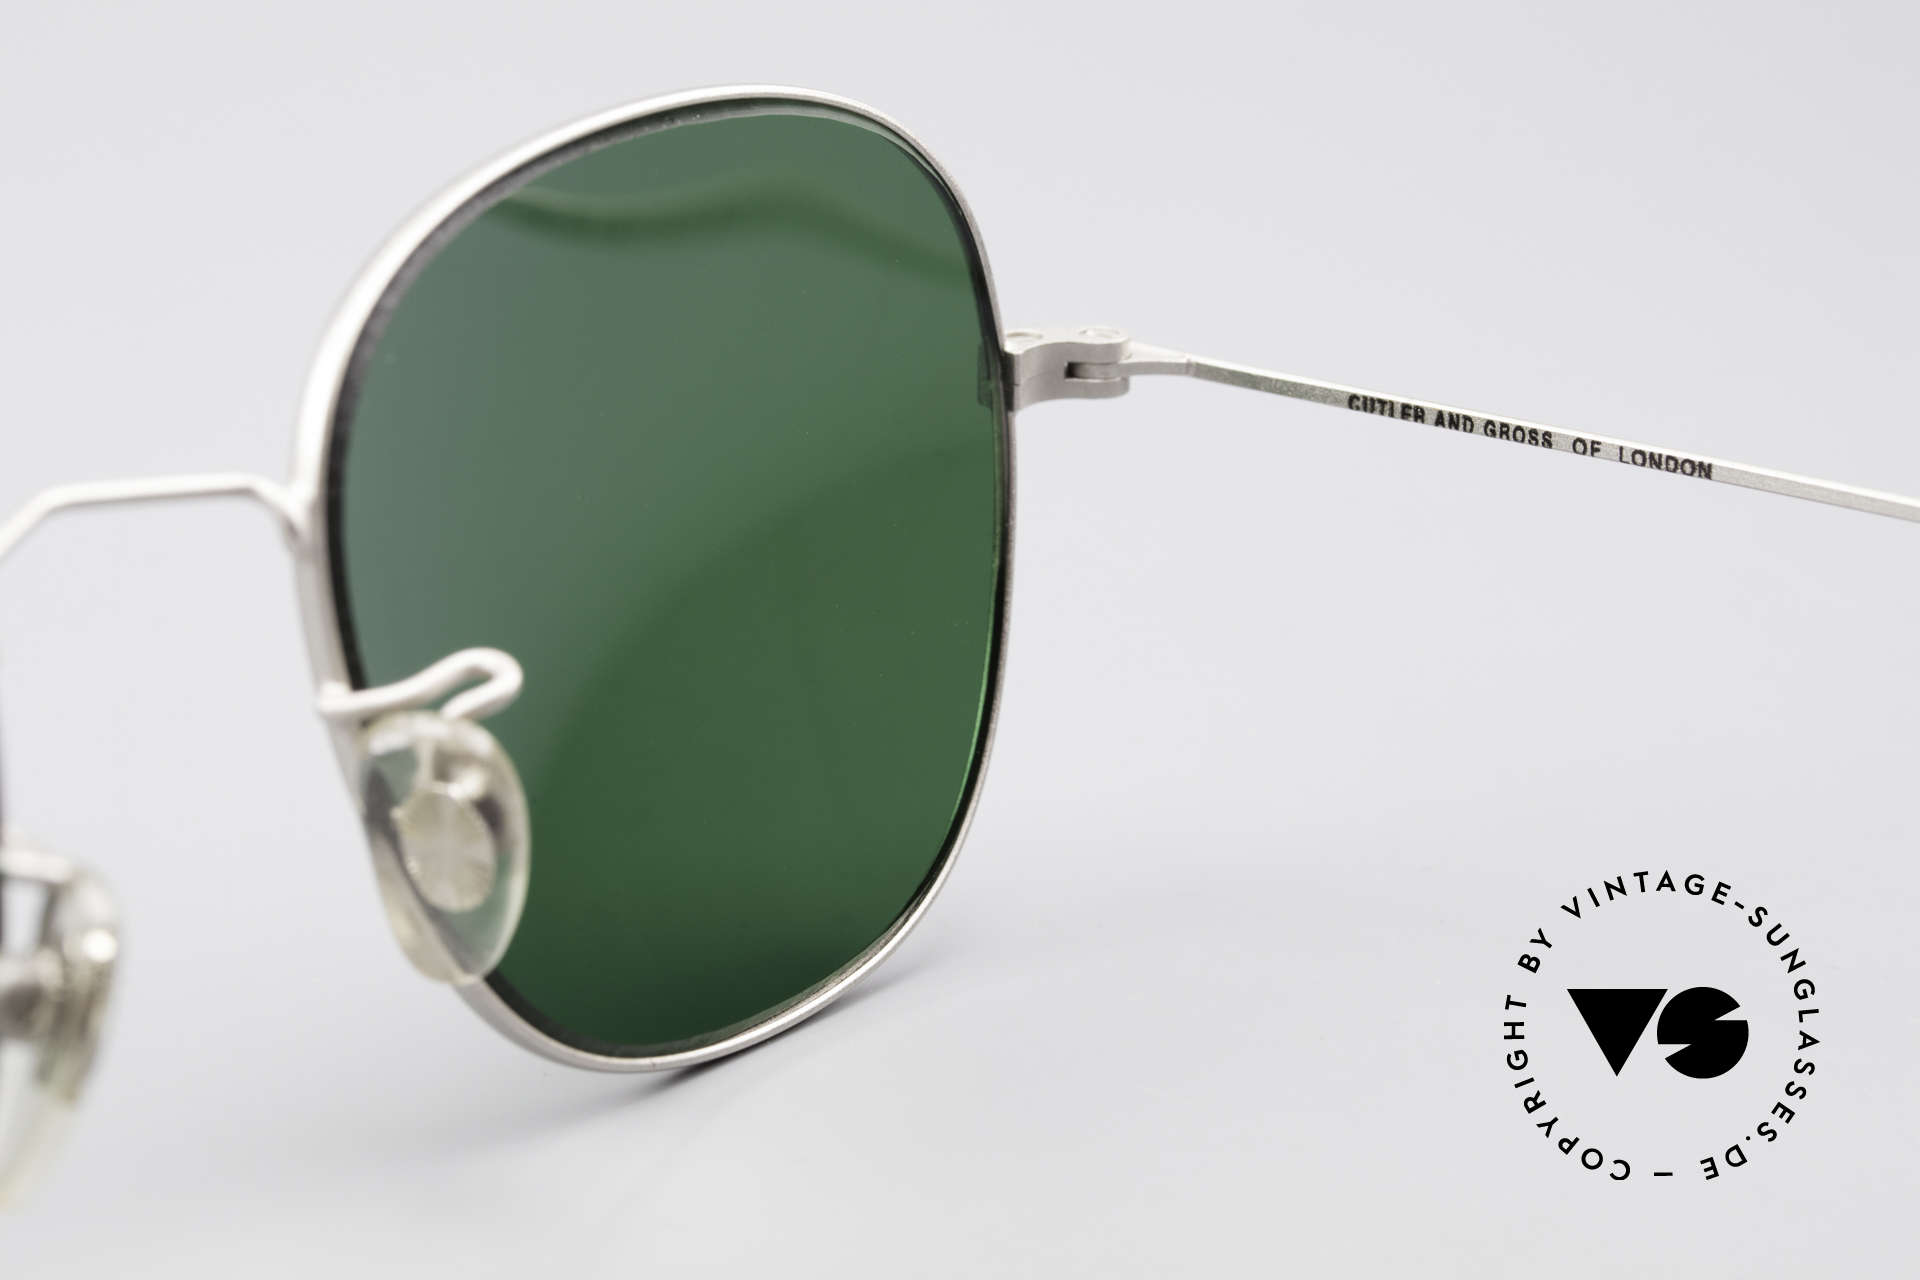 Cutler And Gross 0307 Classic Vintage Sunglasses, never worn; like all our vintage Cutler & Gross eyewear, Made for Men and Women